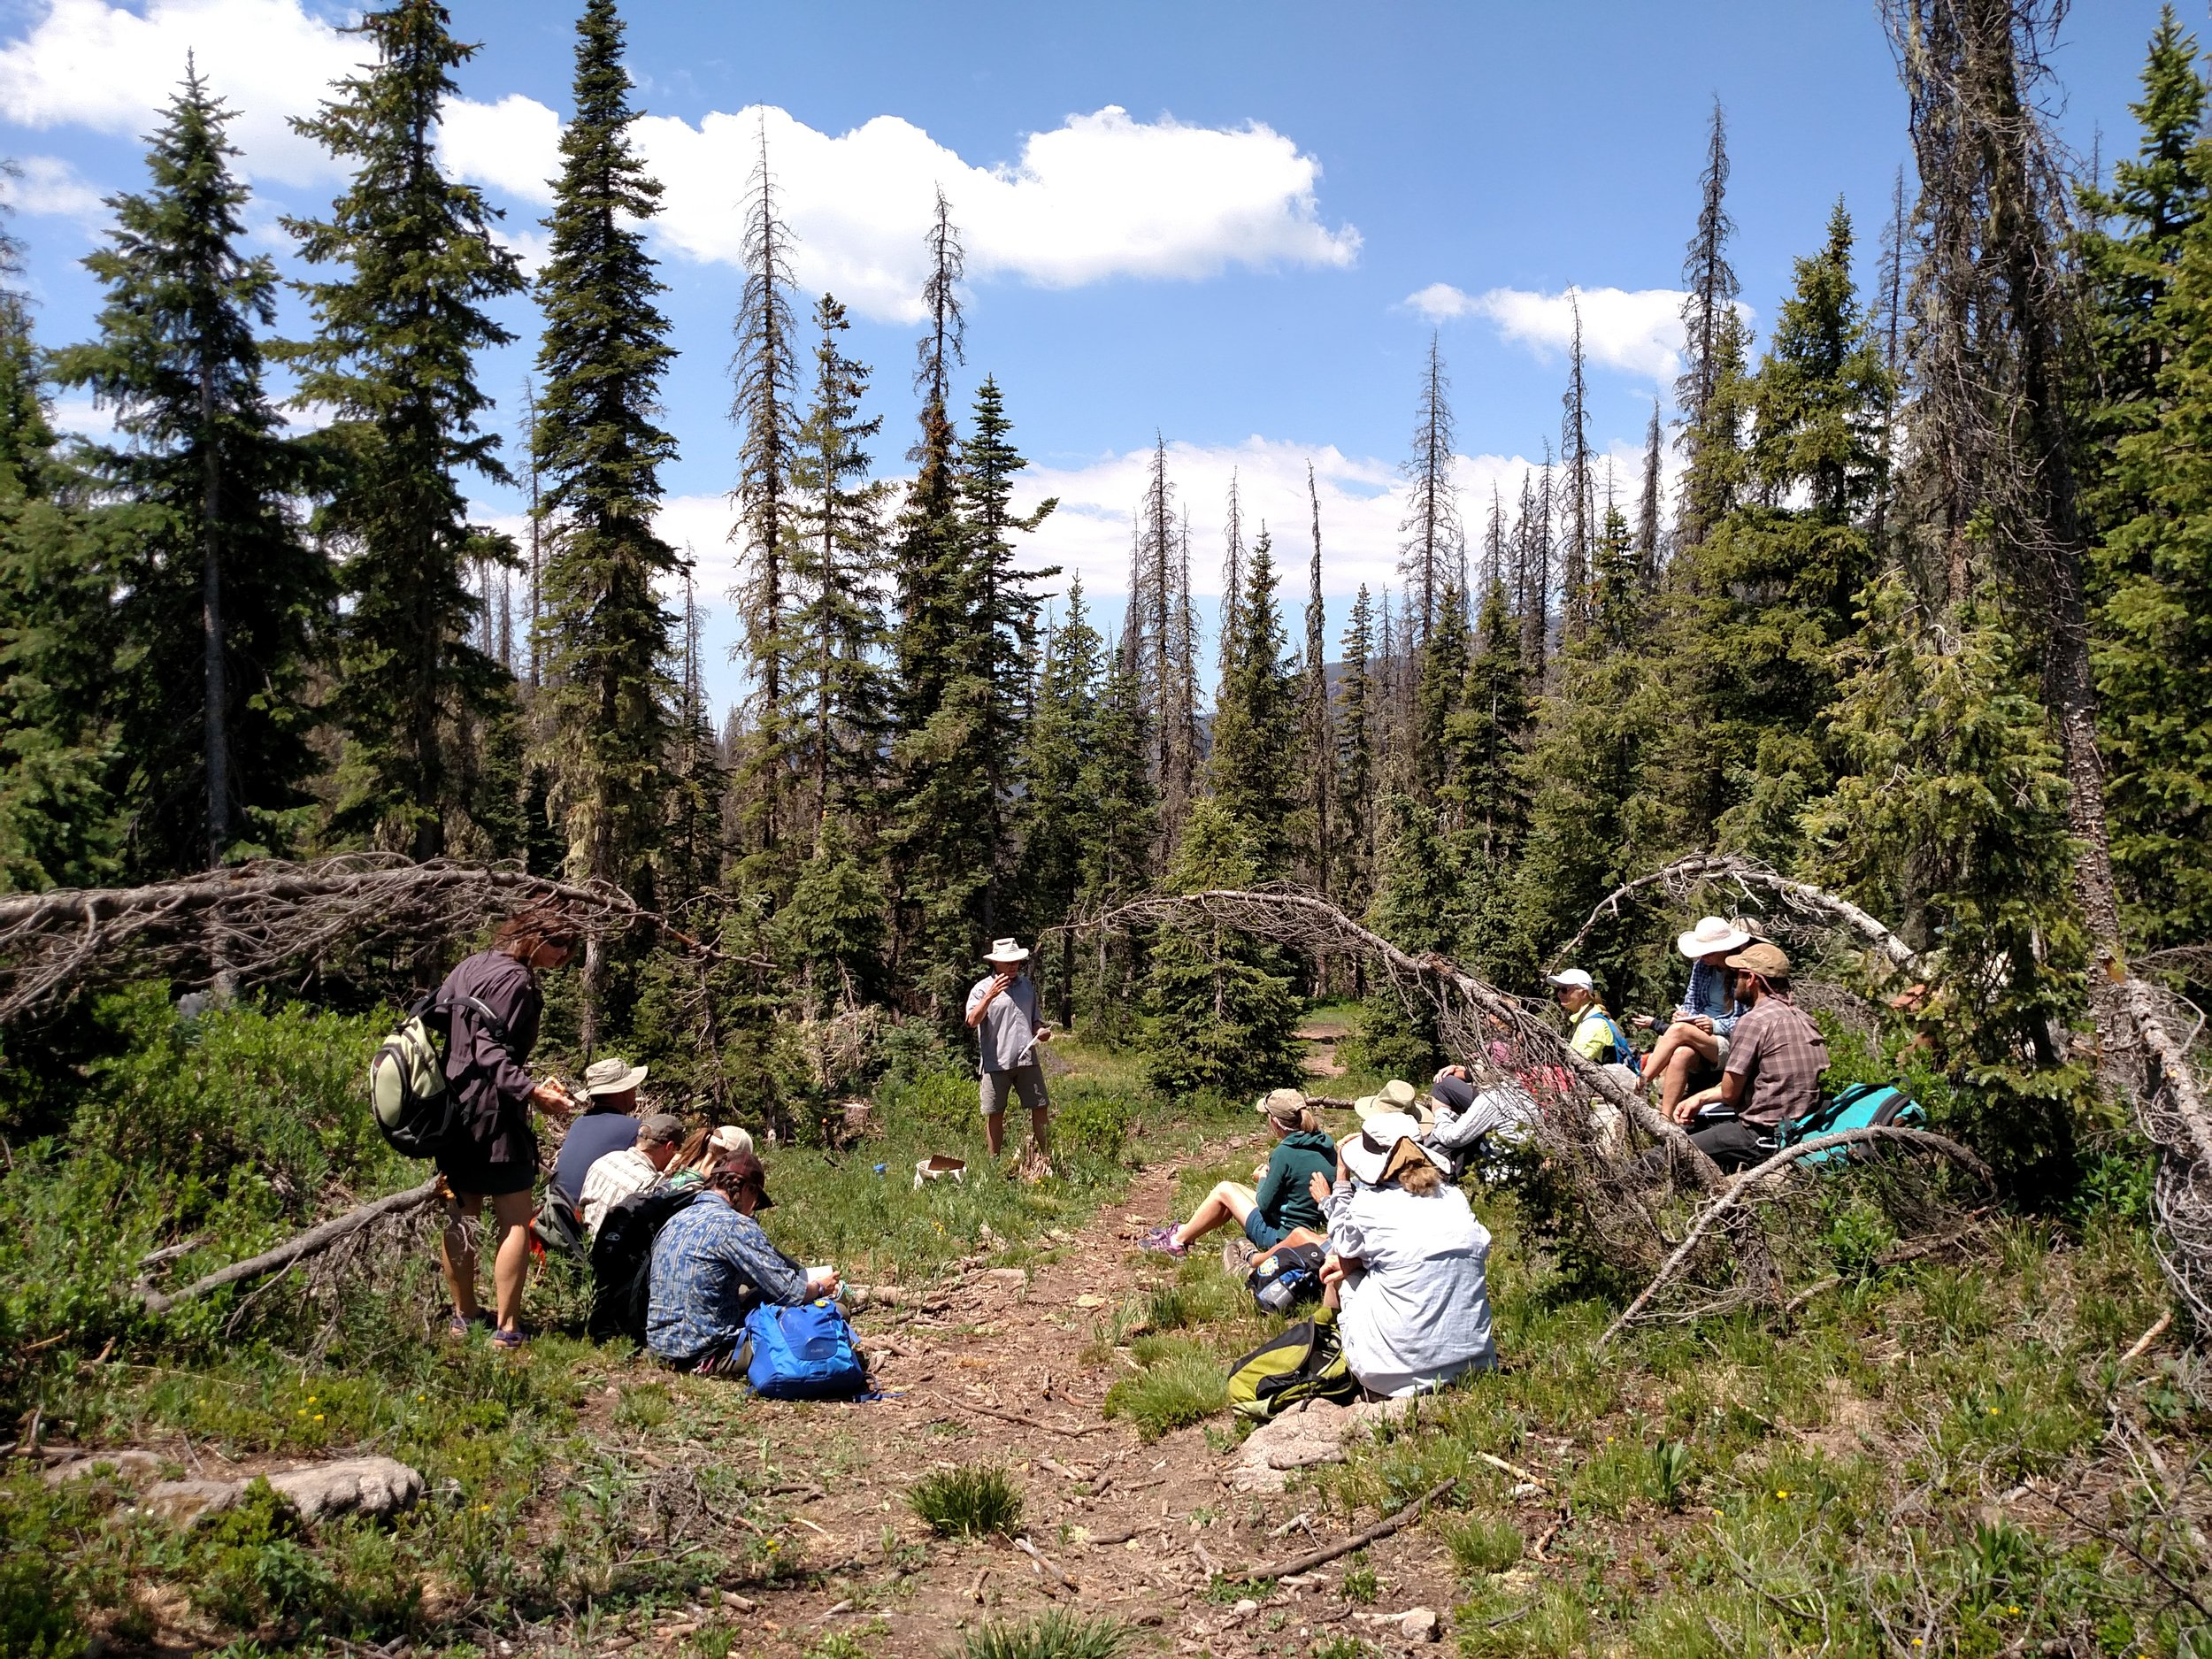 Steve Hartvigsen shares a wealth of knowledge from his lifelong service with the USFS. This forest lecture focused on the relationship between forest health and water quality and quantity.